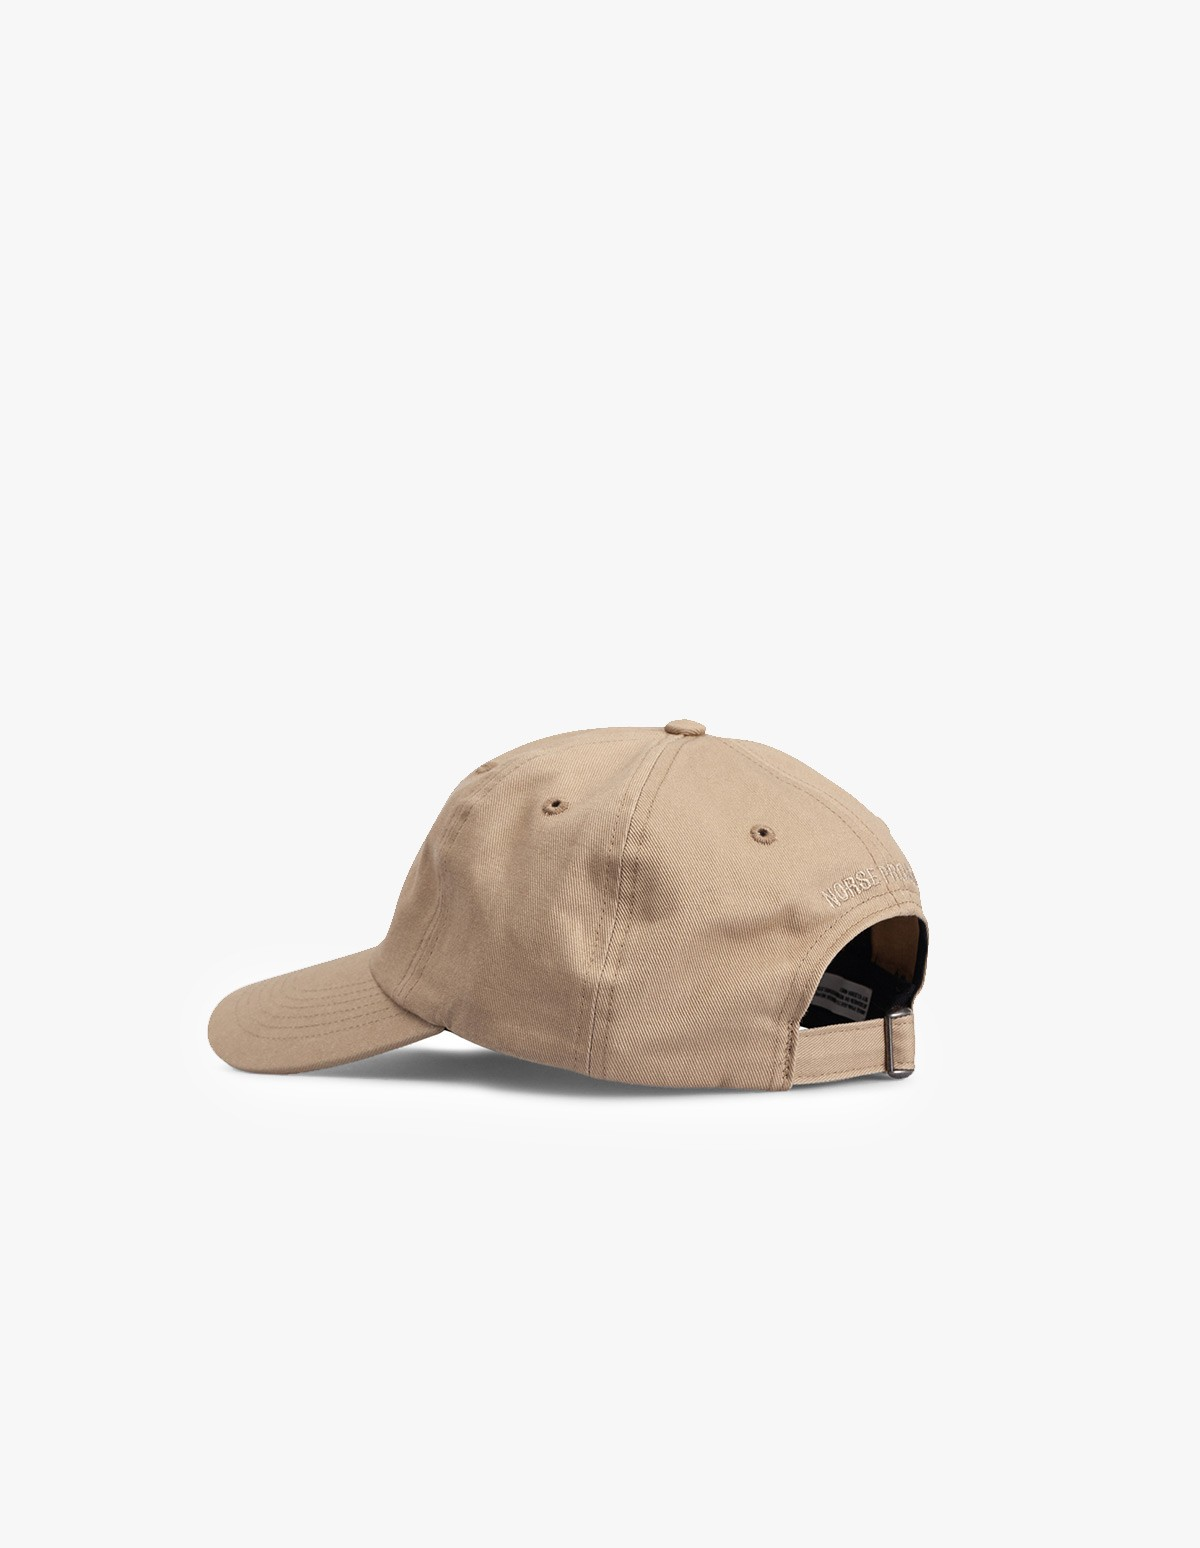 Norse Projects Twill Sports Cap in Utility Khaki